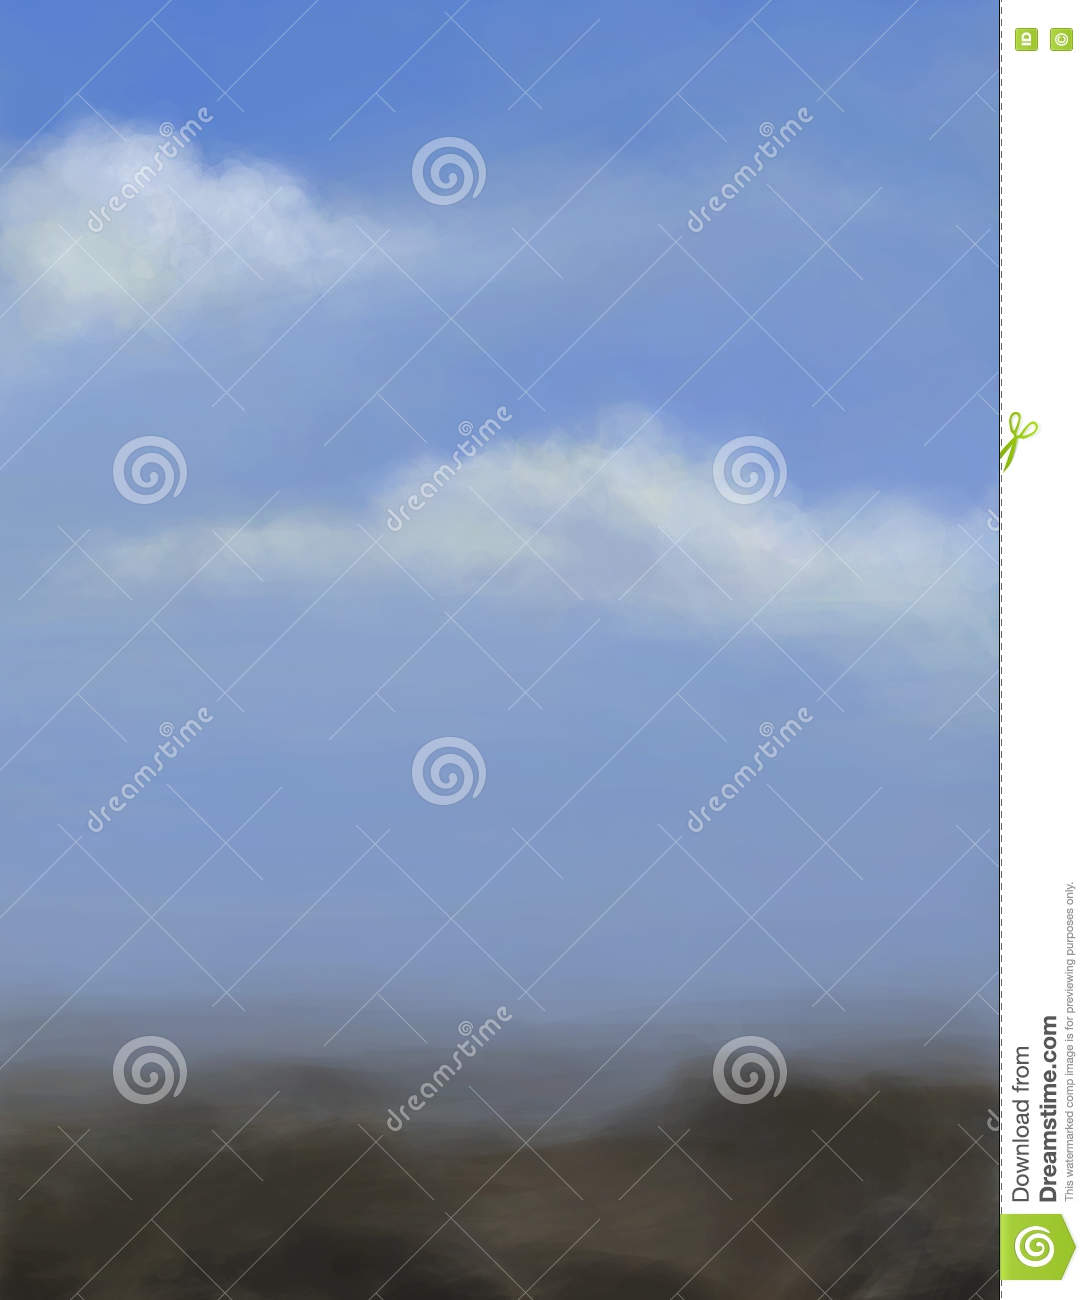 Landscape with blue sky and clouds.